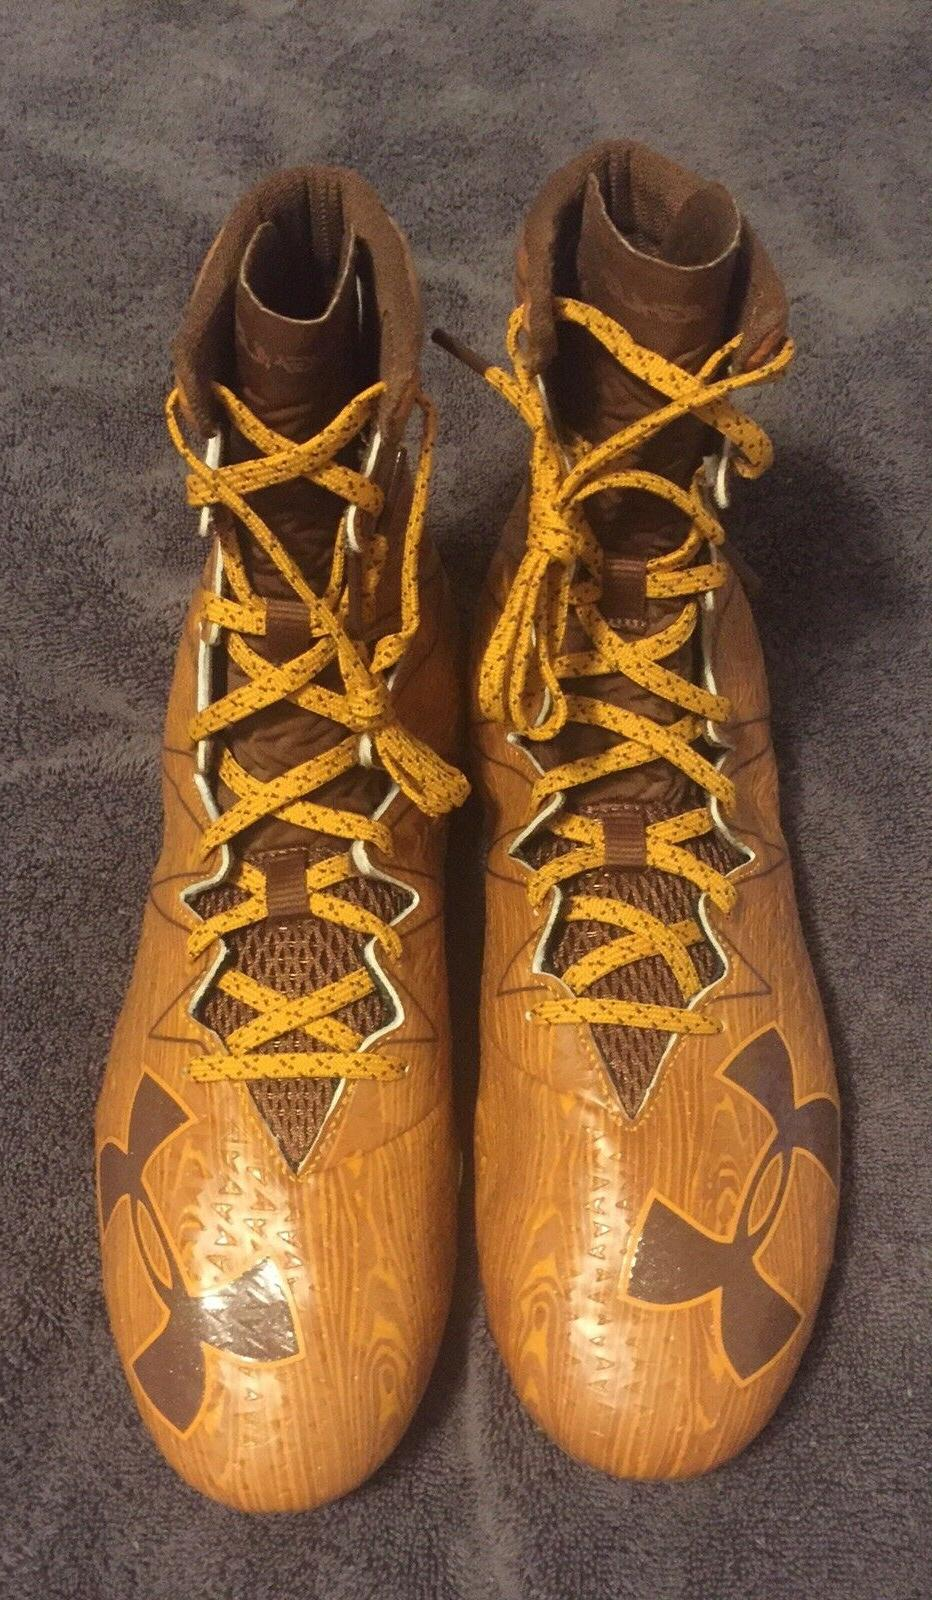 29 UNDER Highlight Wood Molded Football Cleats 10